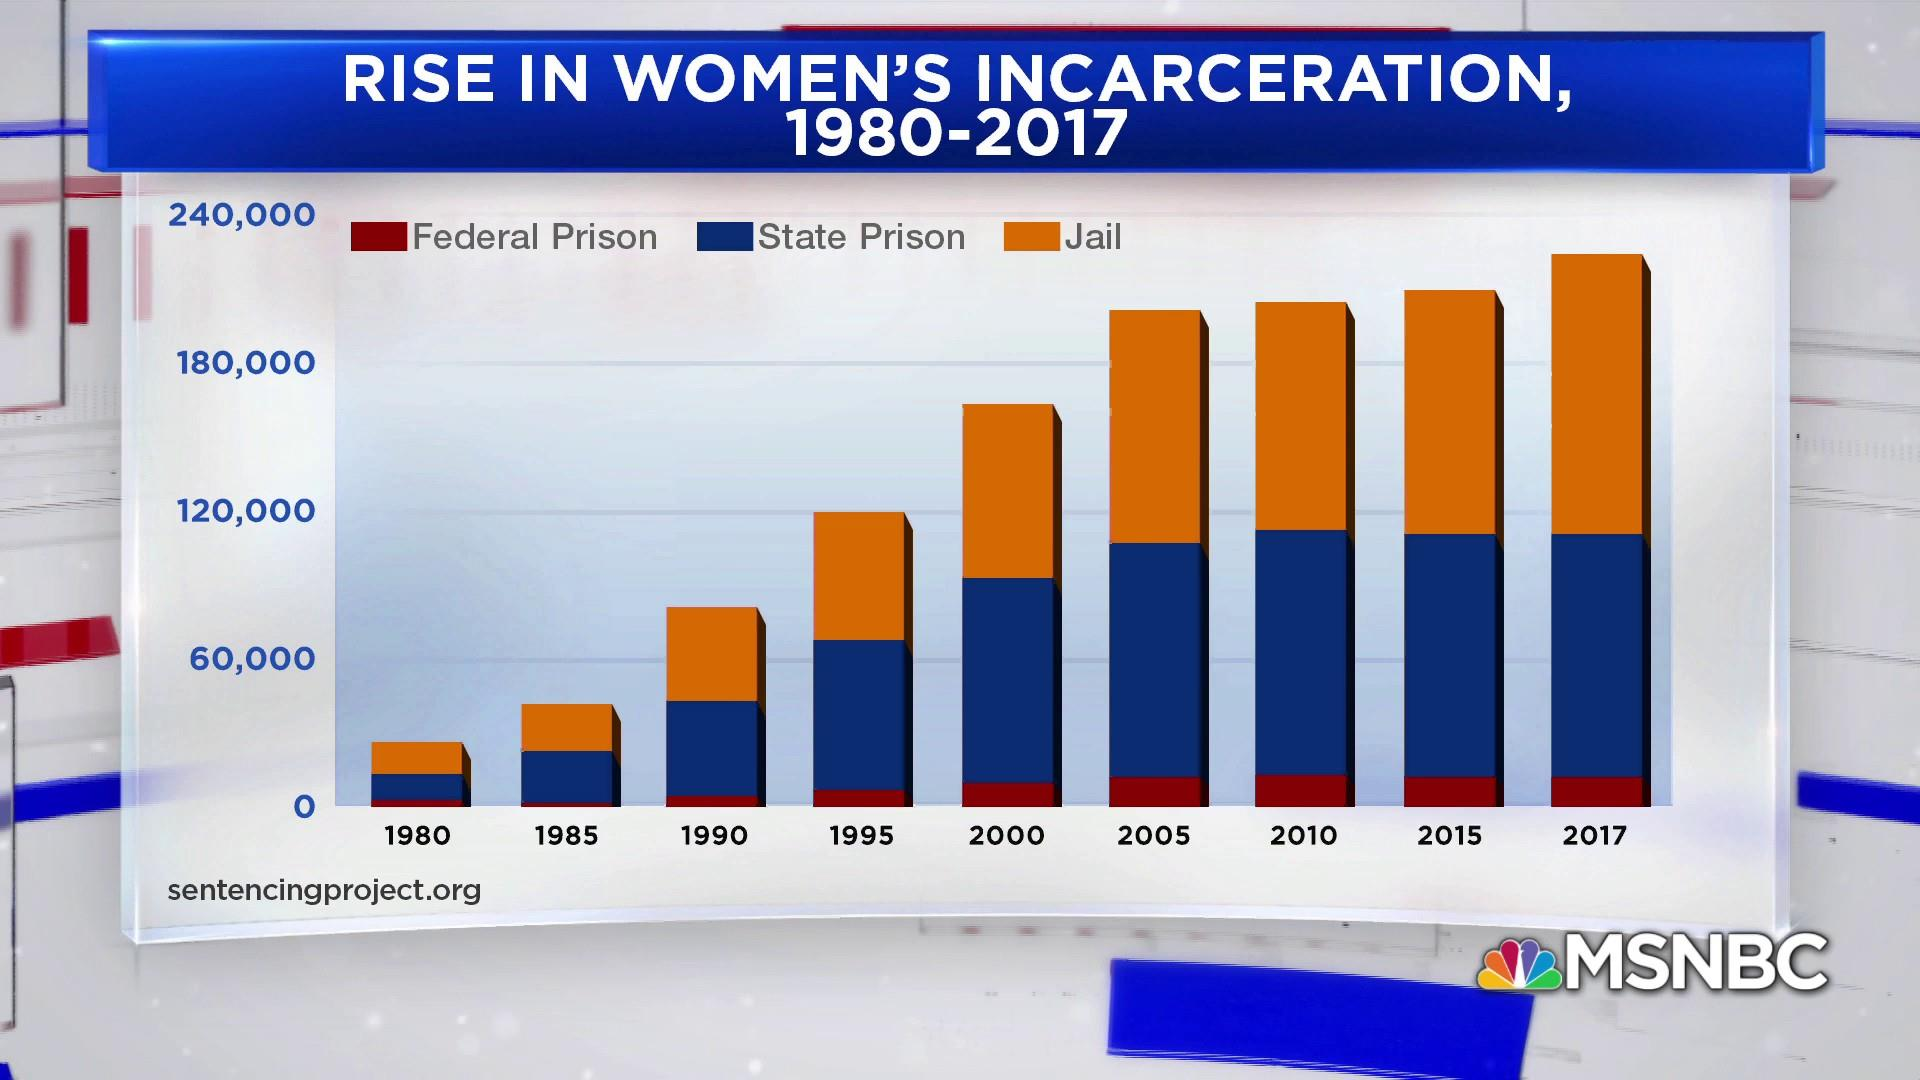 Why Has The Number Of Women In Prison Increased So Drastically Black Lives Matter Cofounder Patrisse Cullors Explains